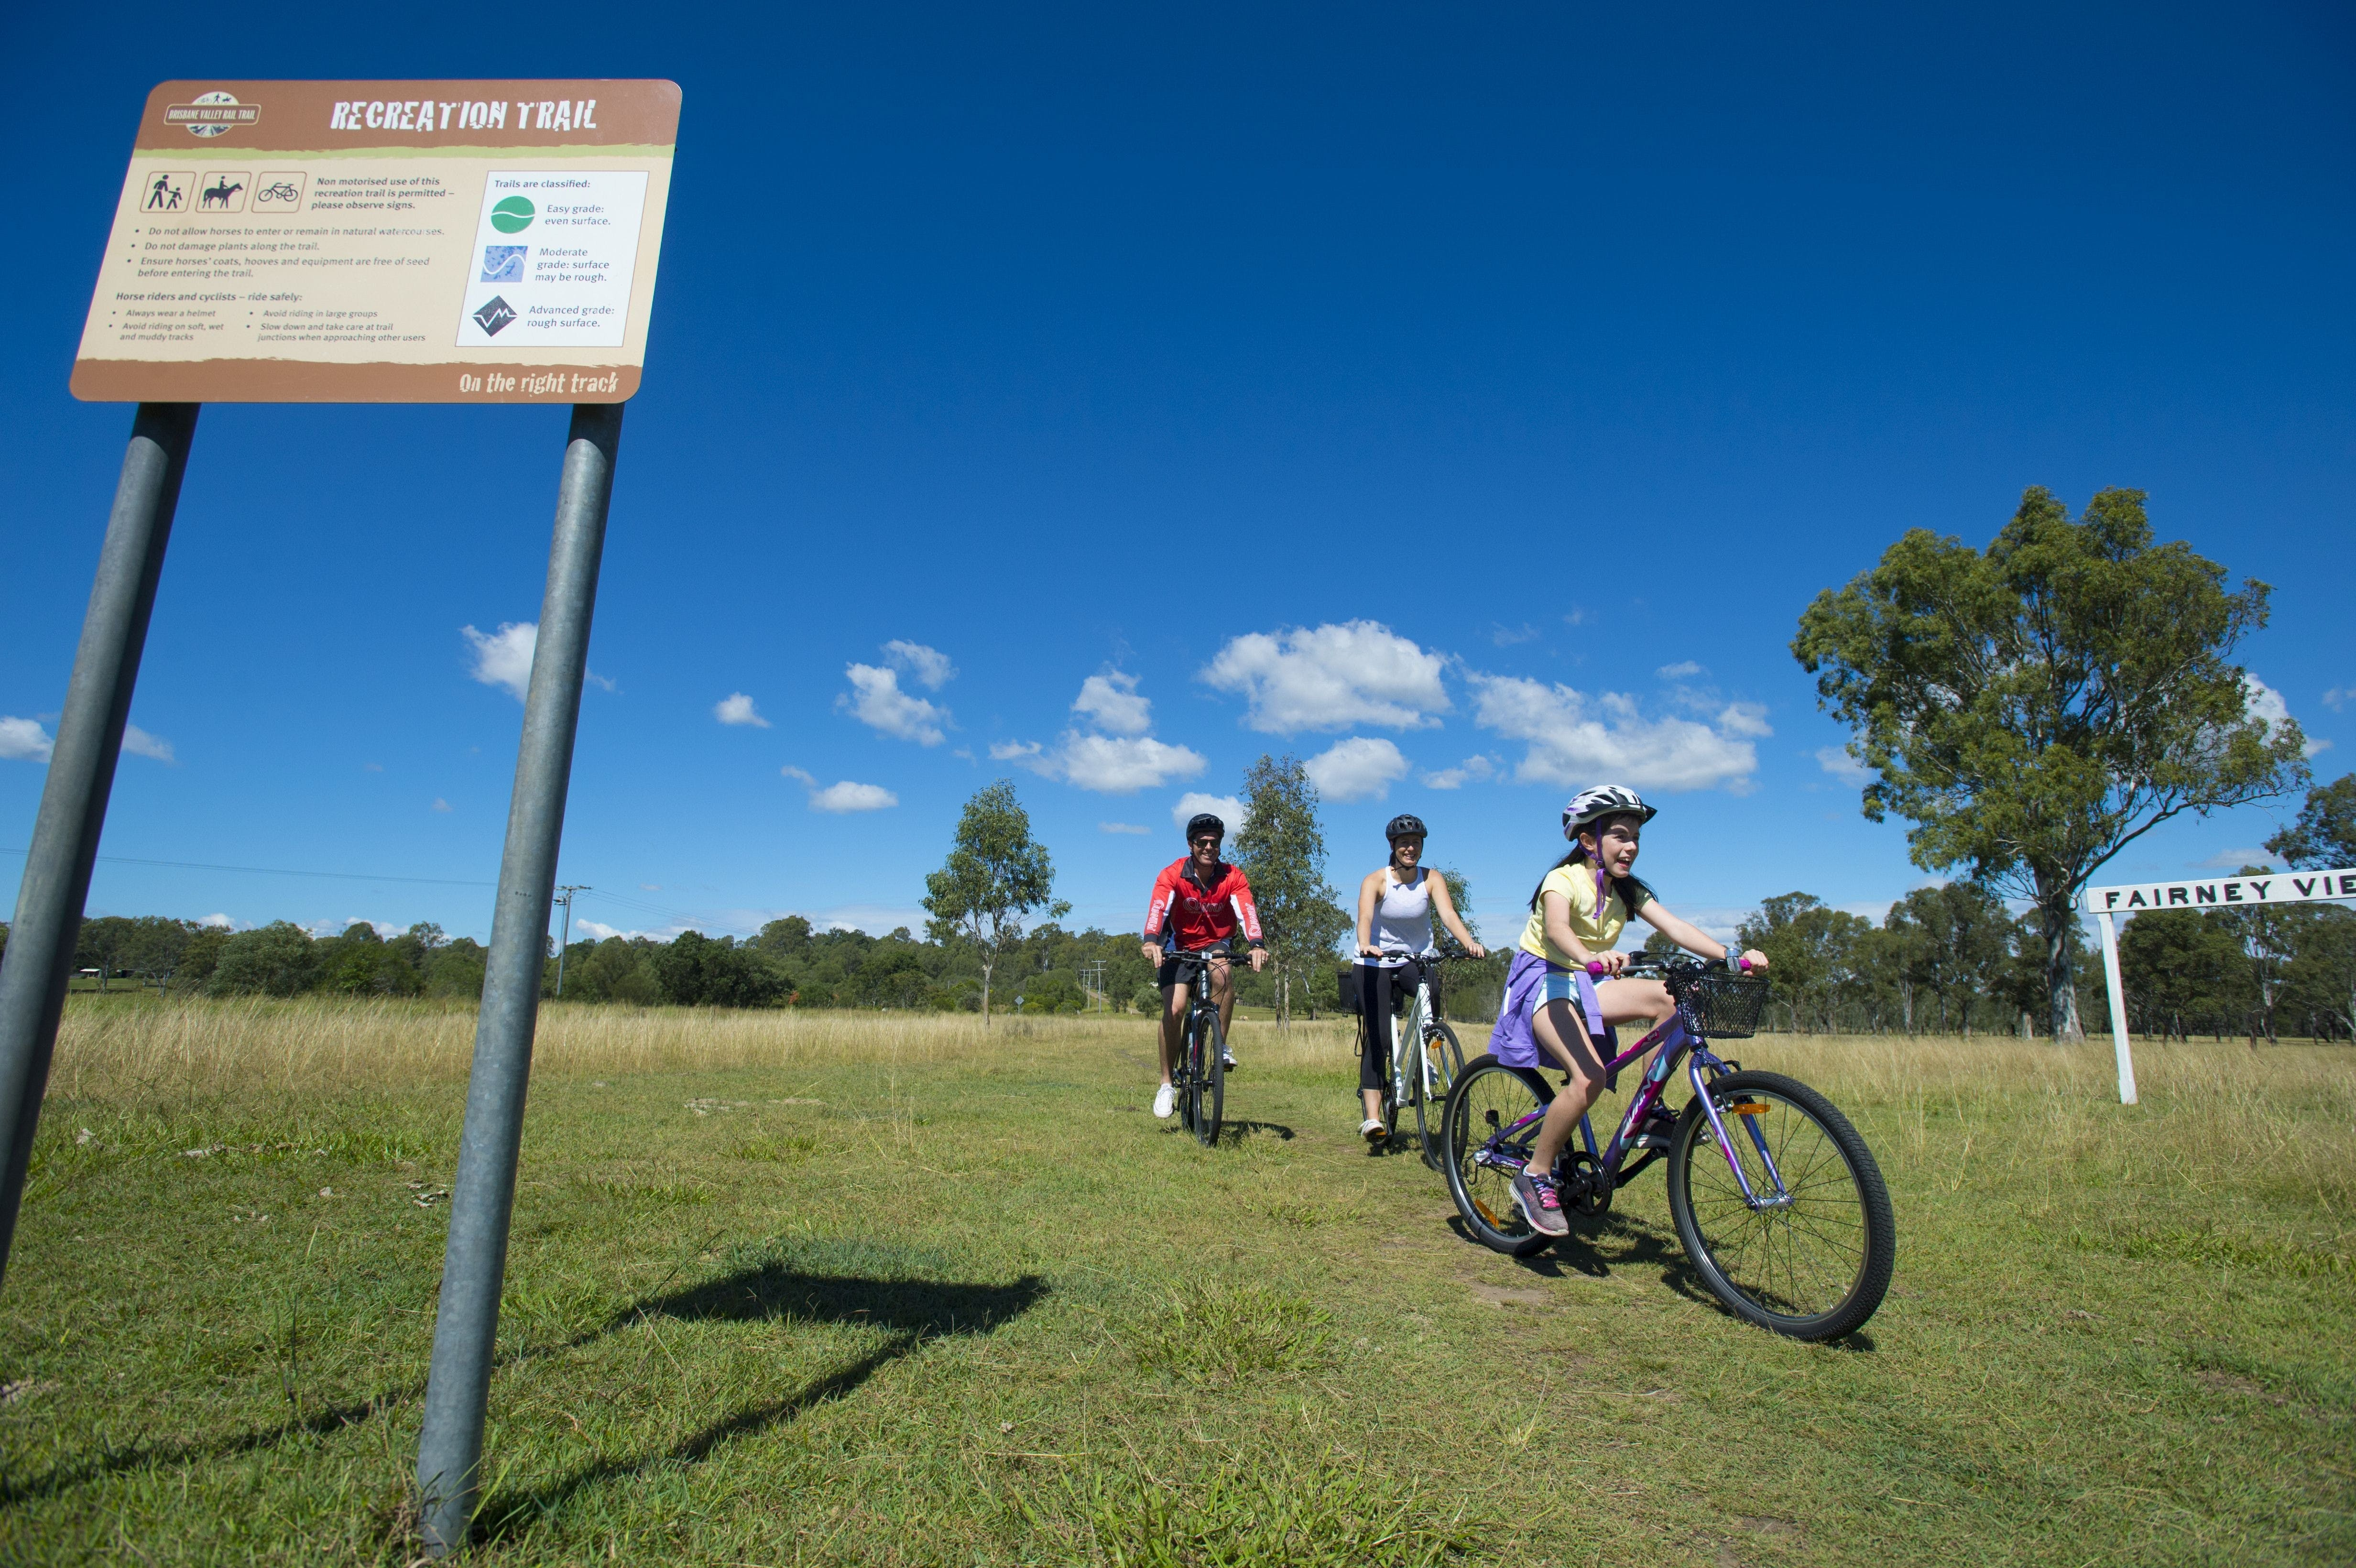 Experience the Somerset region - ACT Tourism